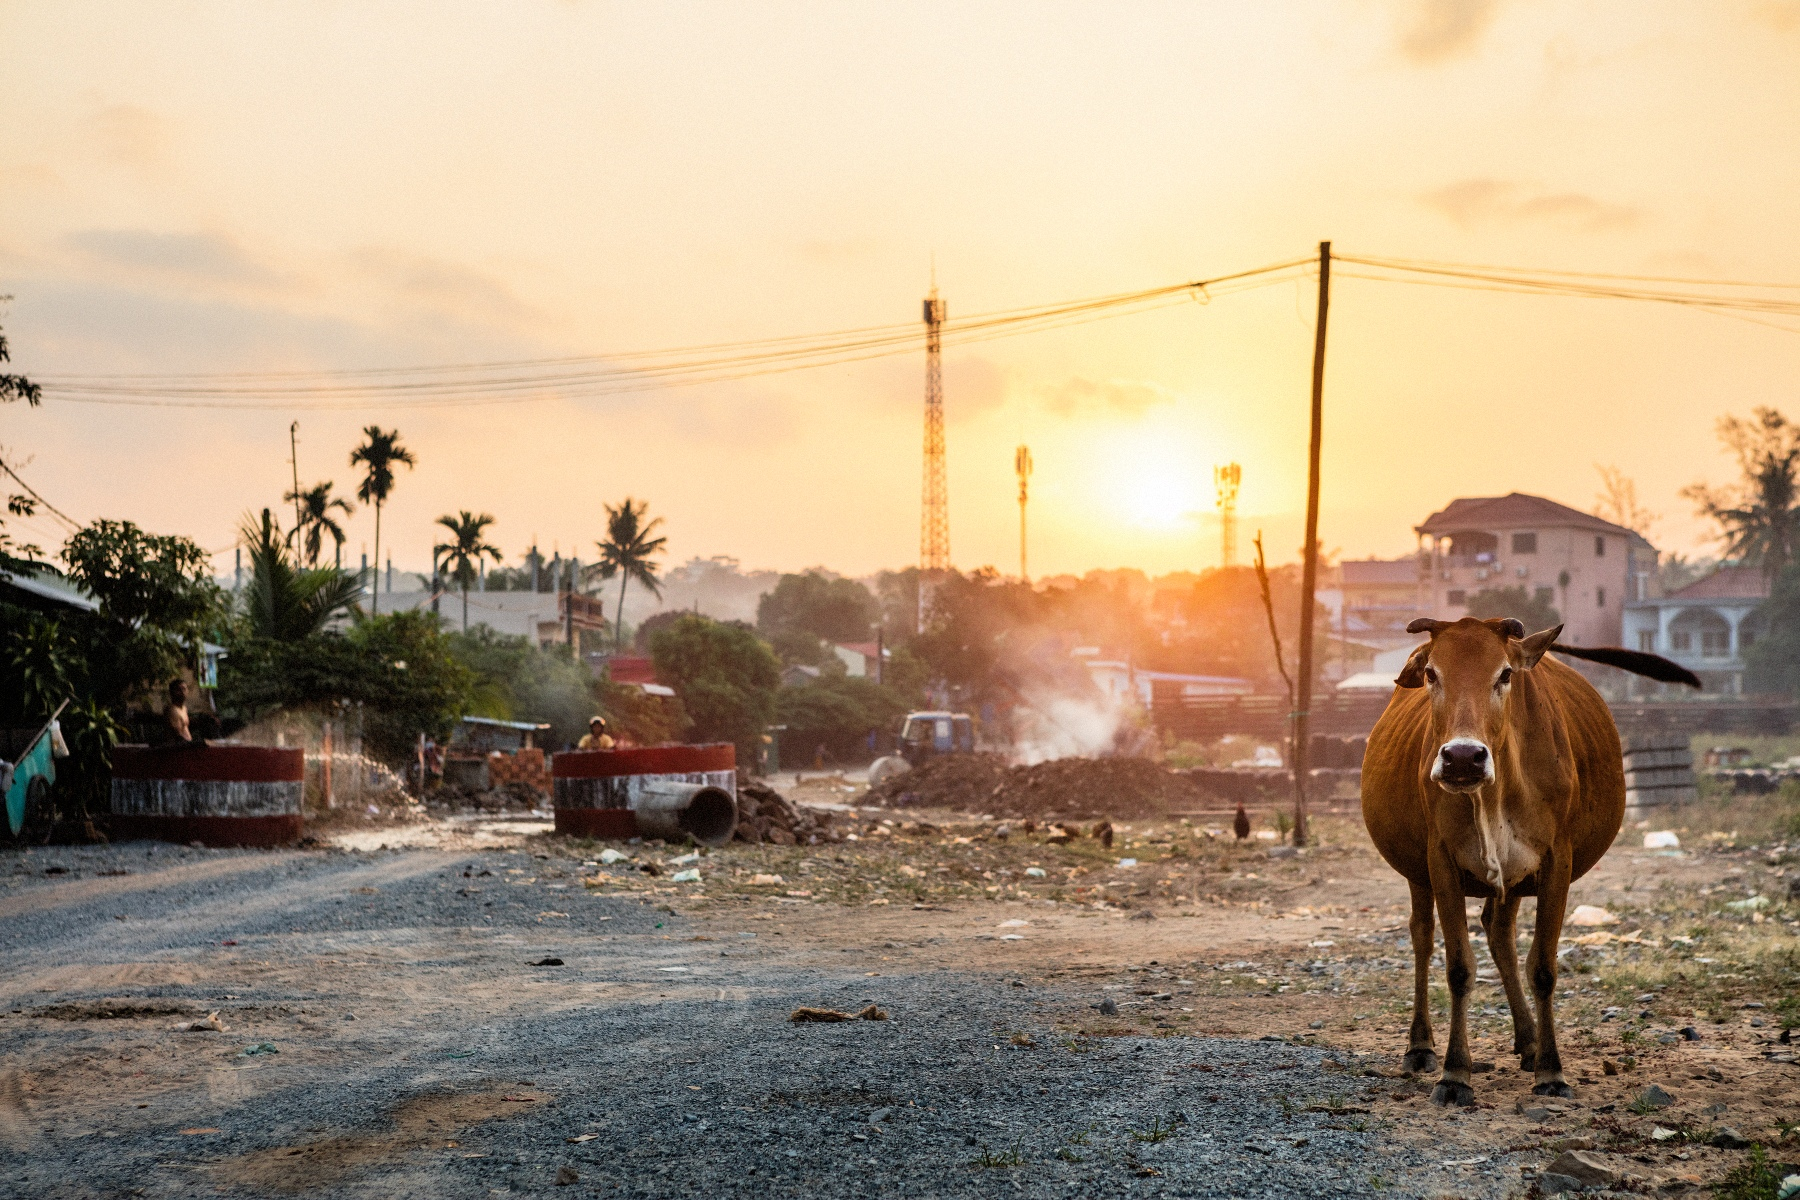 Just outside the  railway station in Sihanoukville  in the sunrise together with a cow.